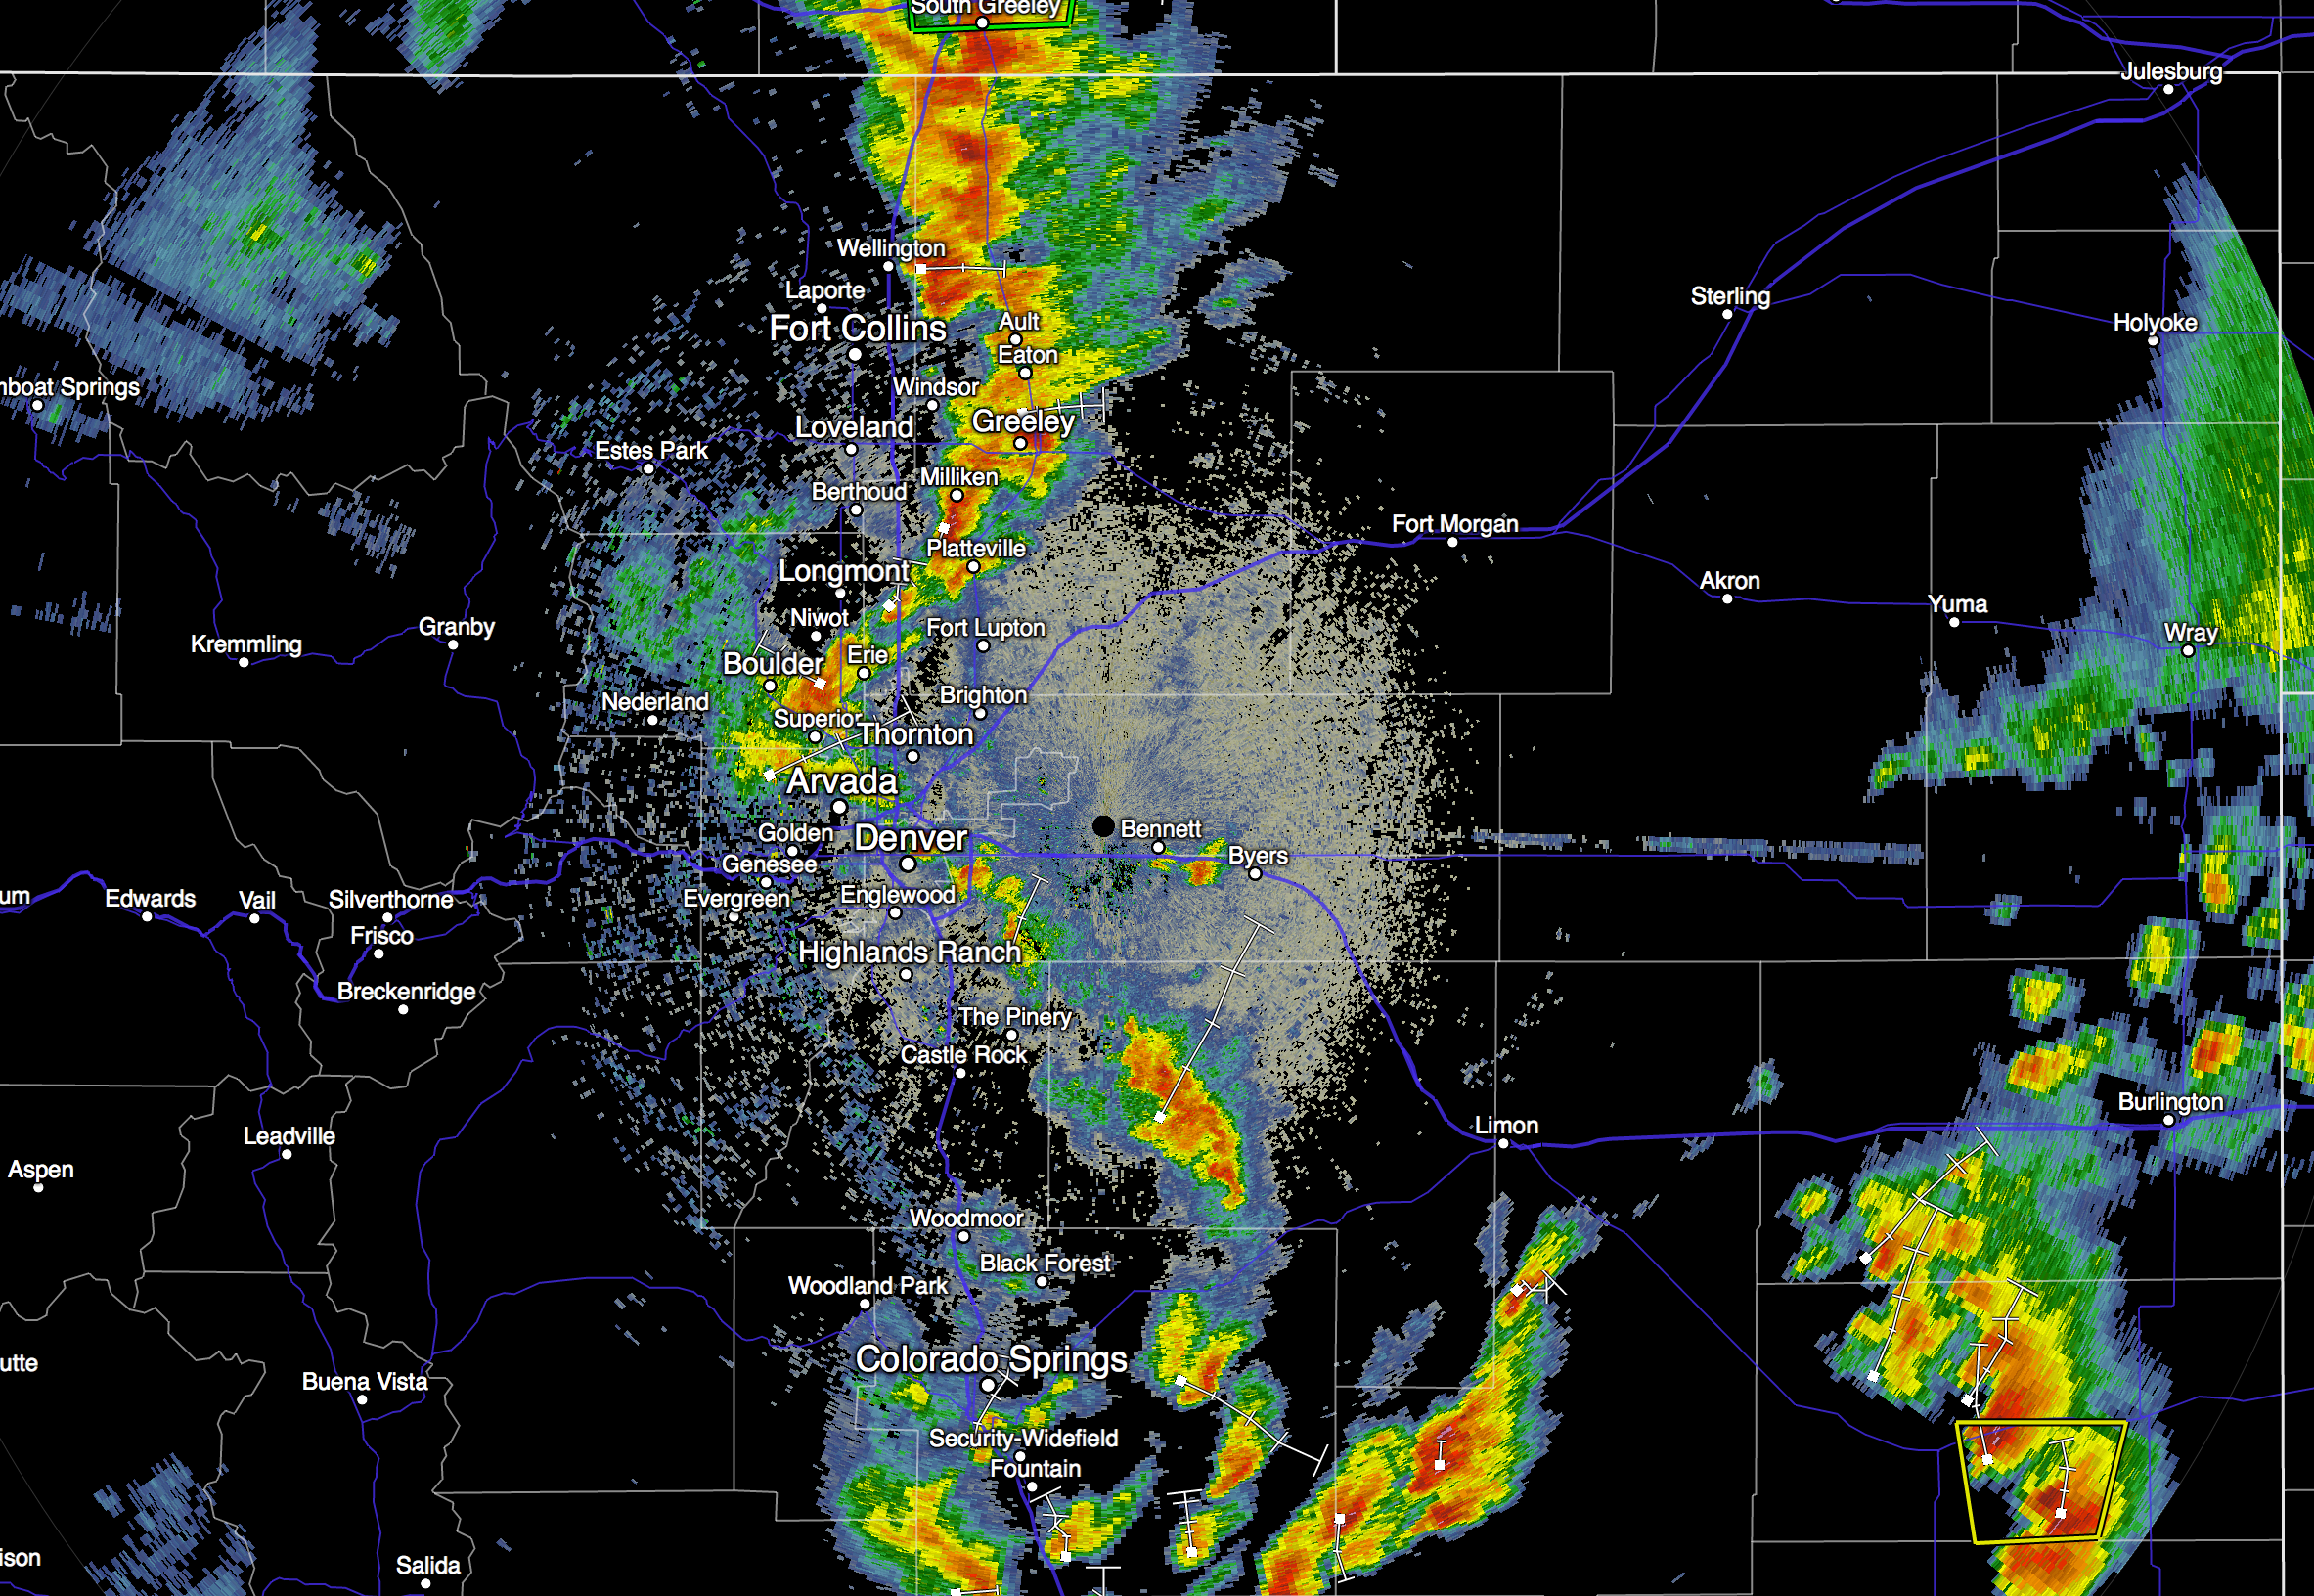 Sunday 6:10pm radar imagery northeast Colorado showing line of good storms developing along the Front Range and moving east / northeast through the evening | RadarScope